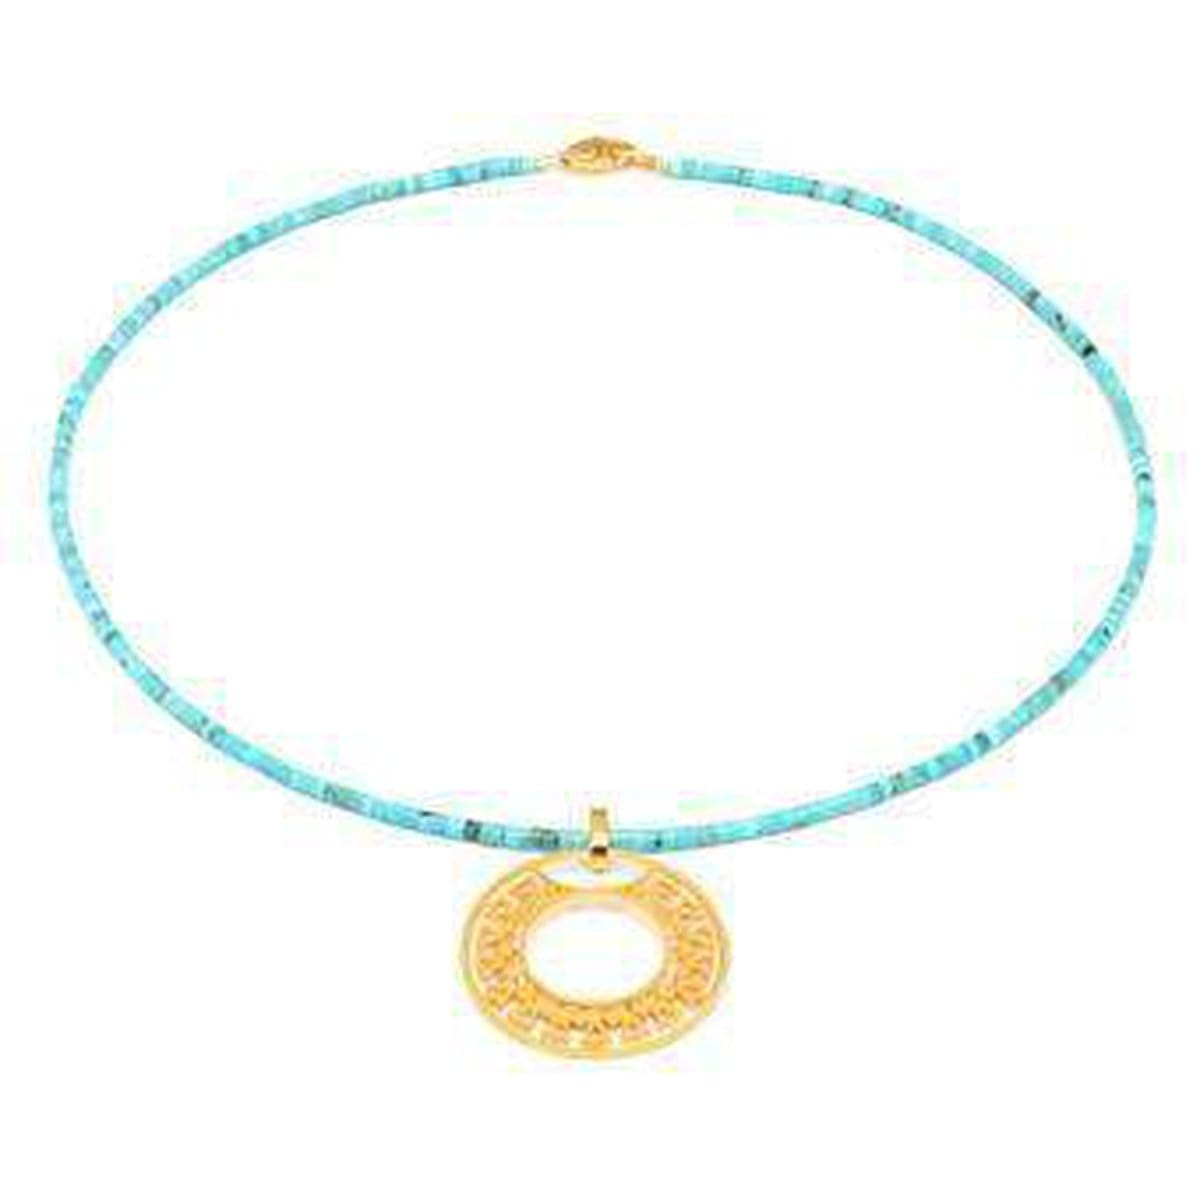 Milonga Turquoise Necklace - 85380256-Bernd Wolf-Renee Taylor Gallery